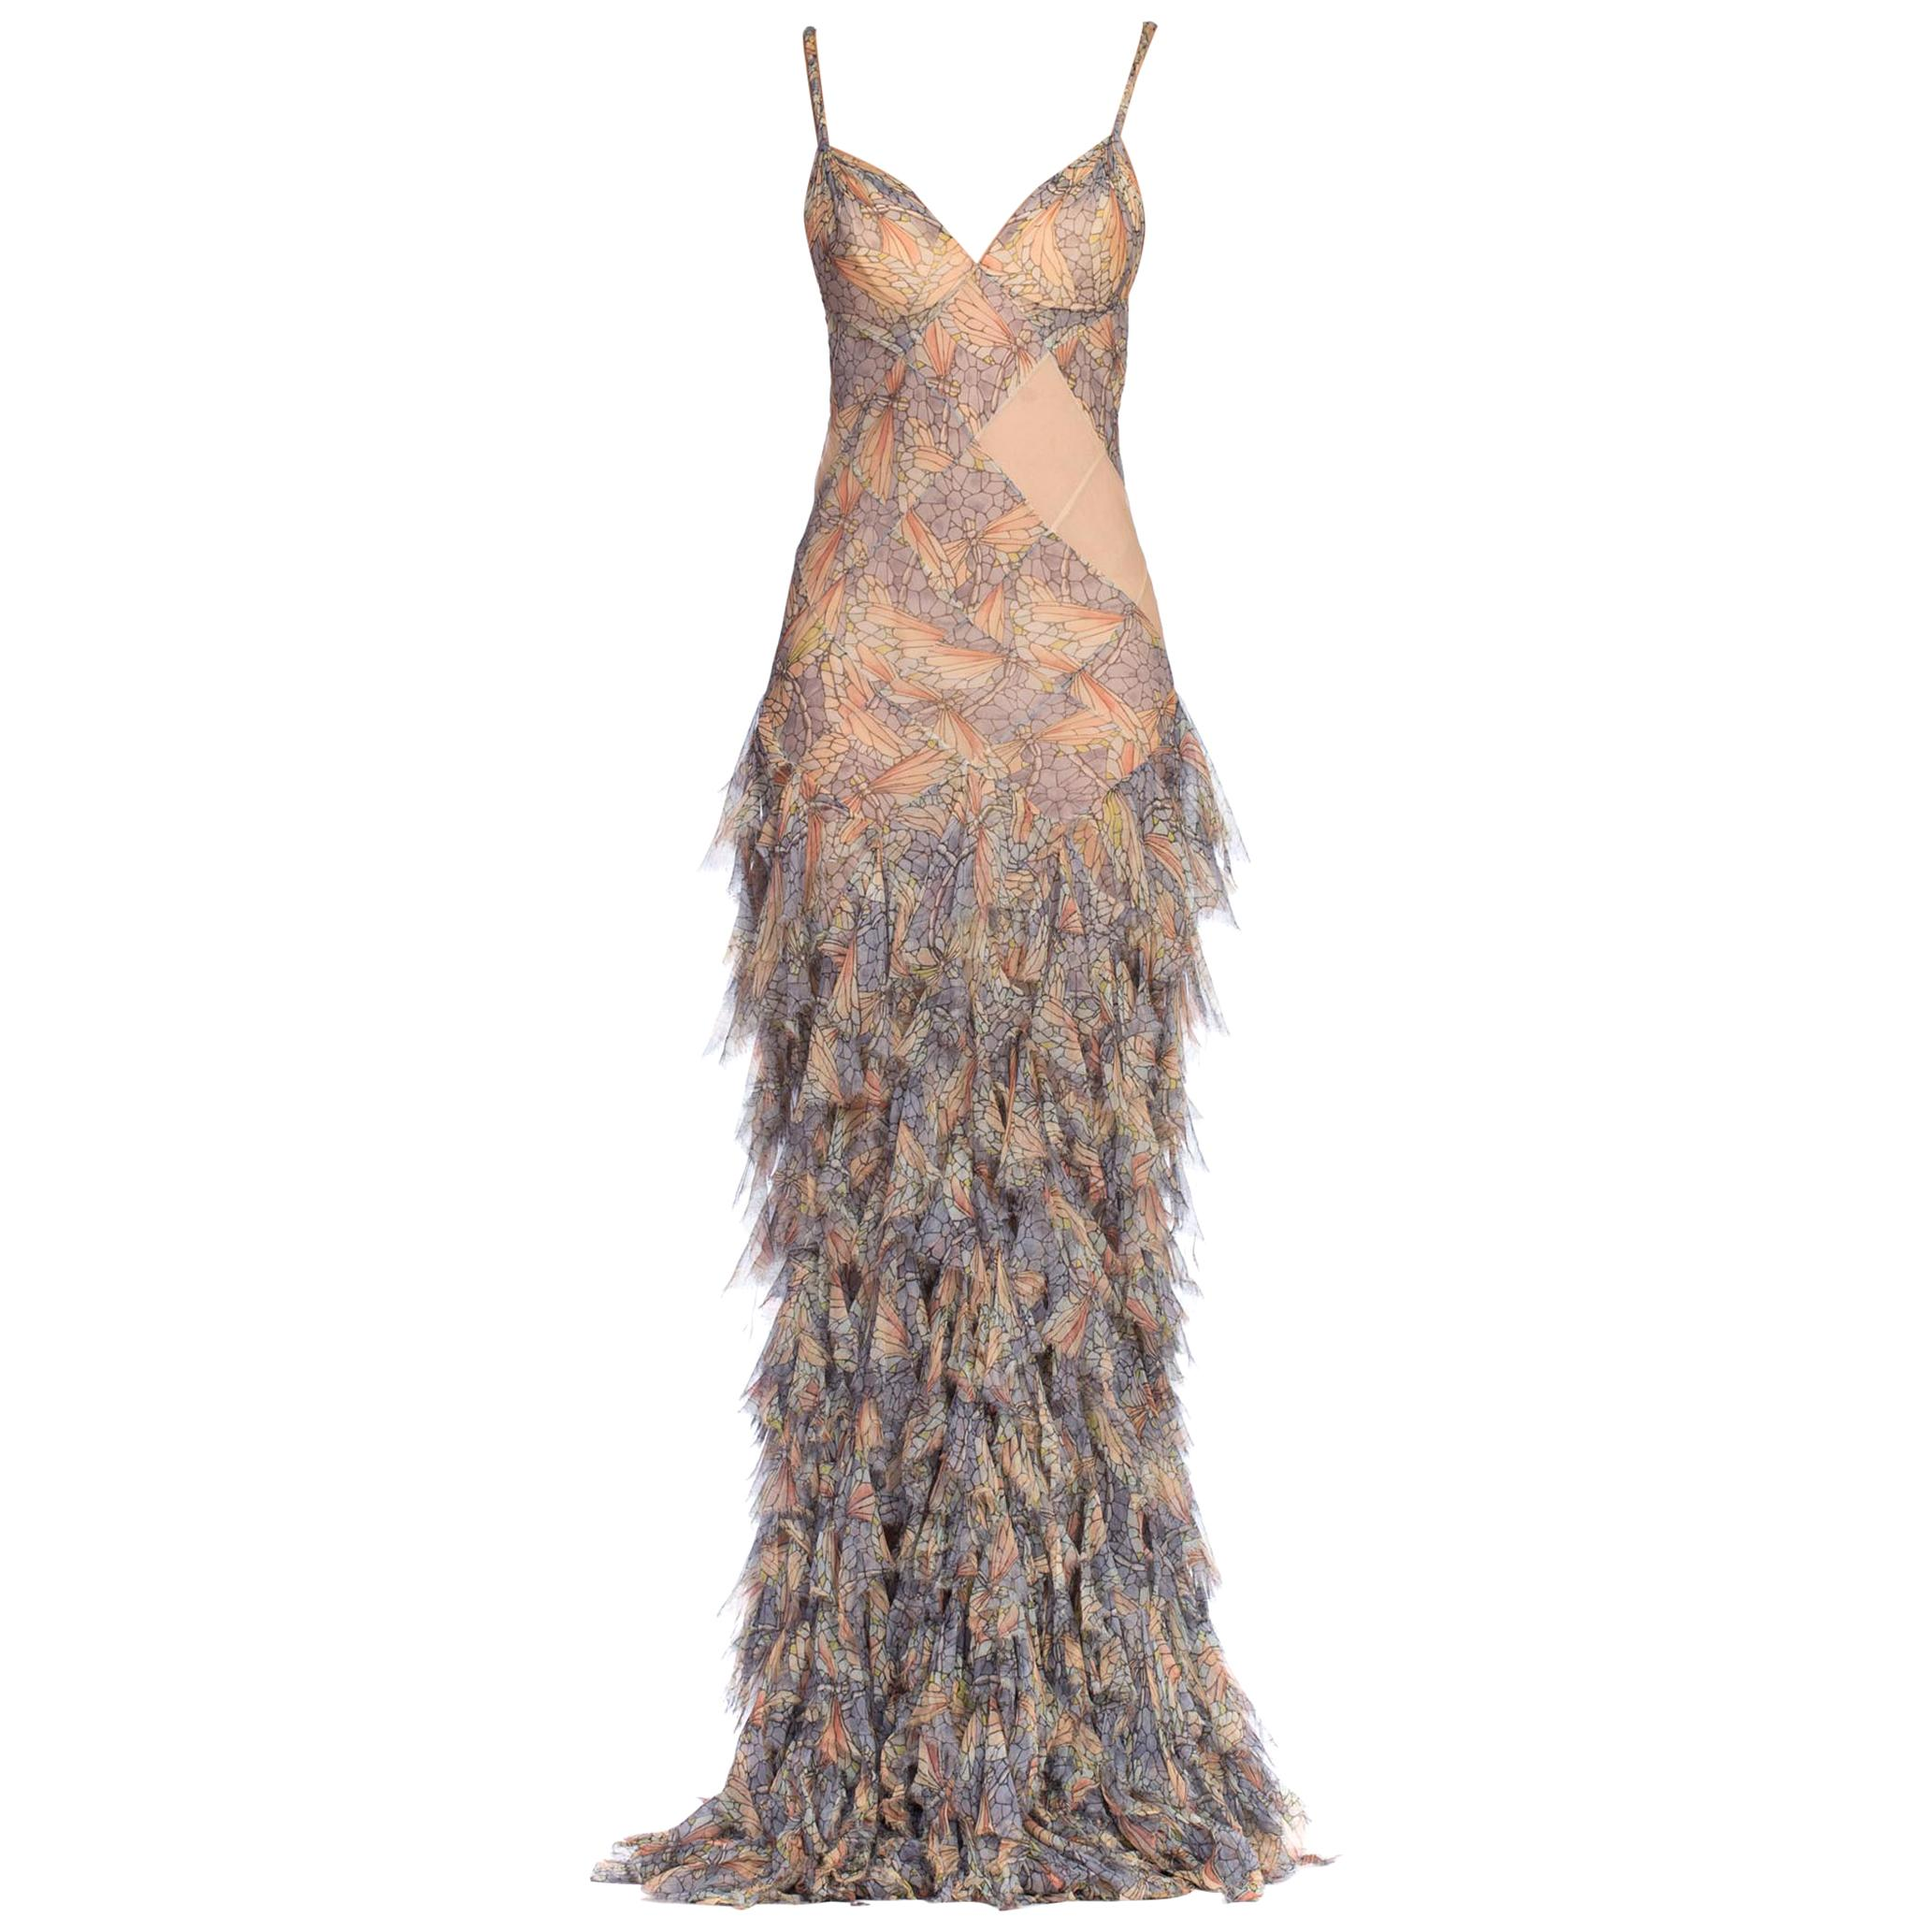 3df57f84dd78 Vintage Alexander McQueen Evening Dresses and Gowns - 239 For Sale at  1stdibs